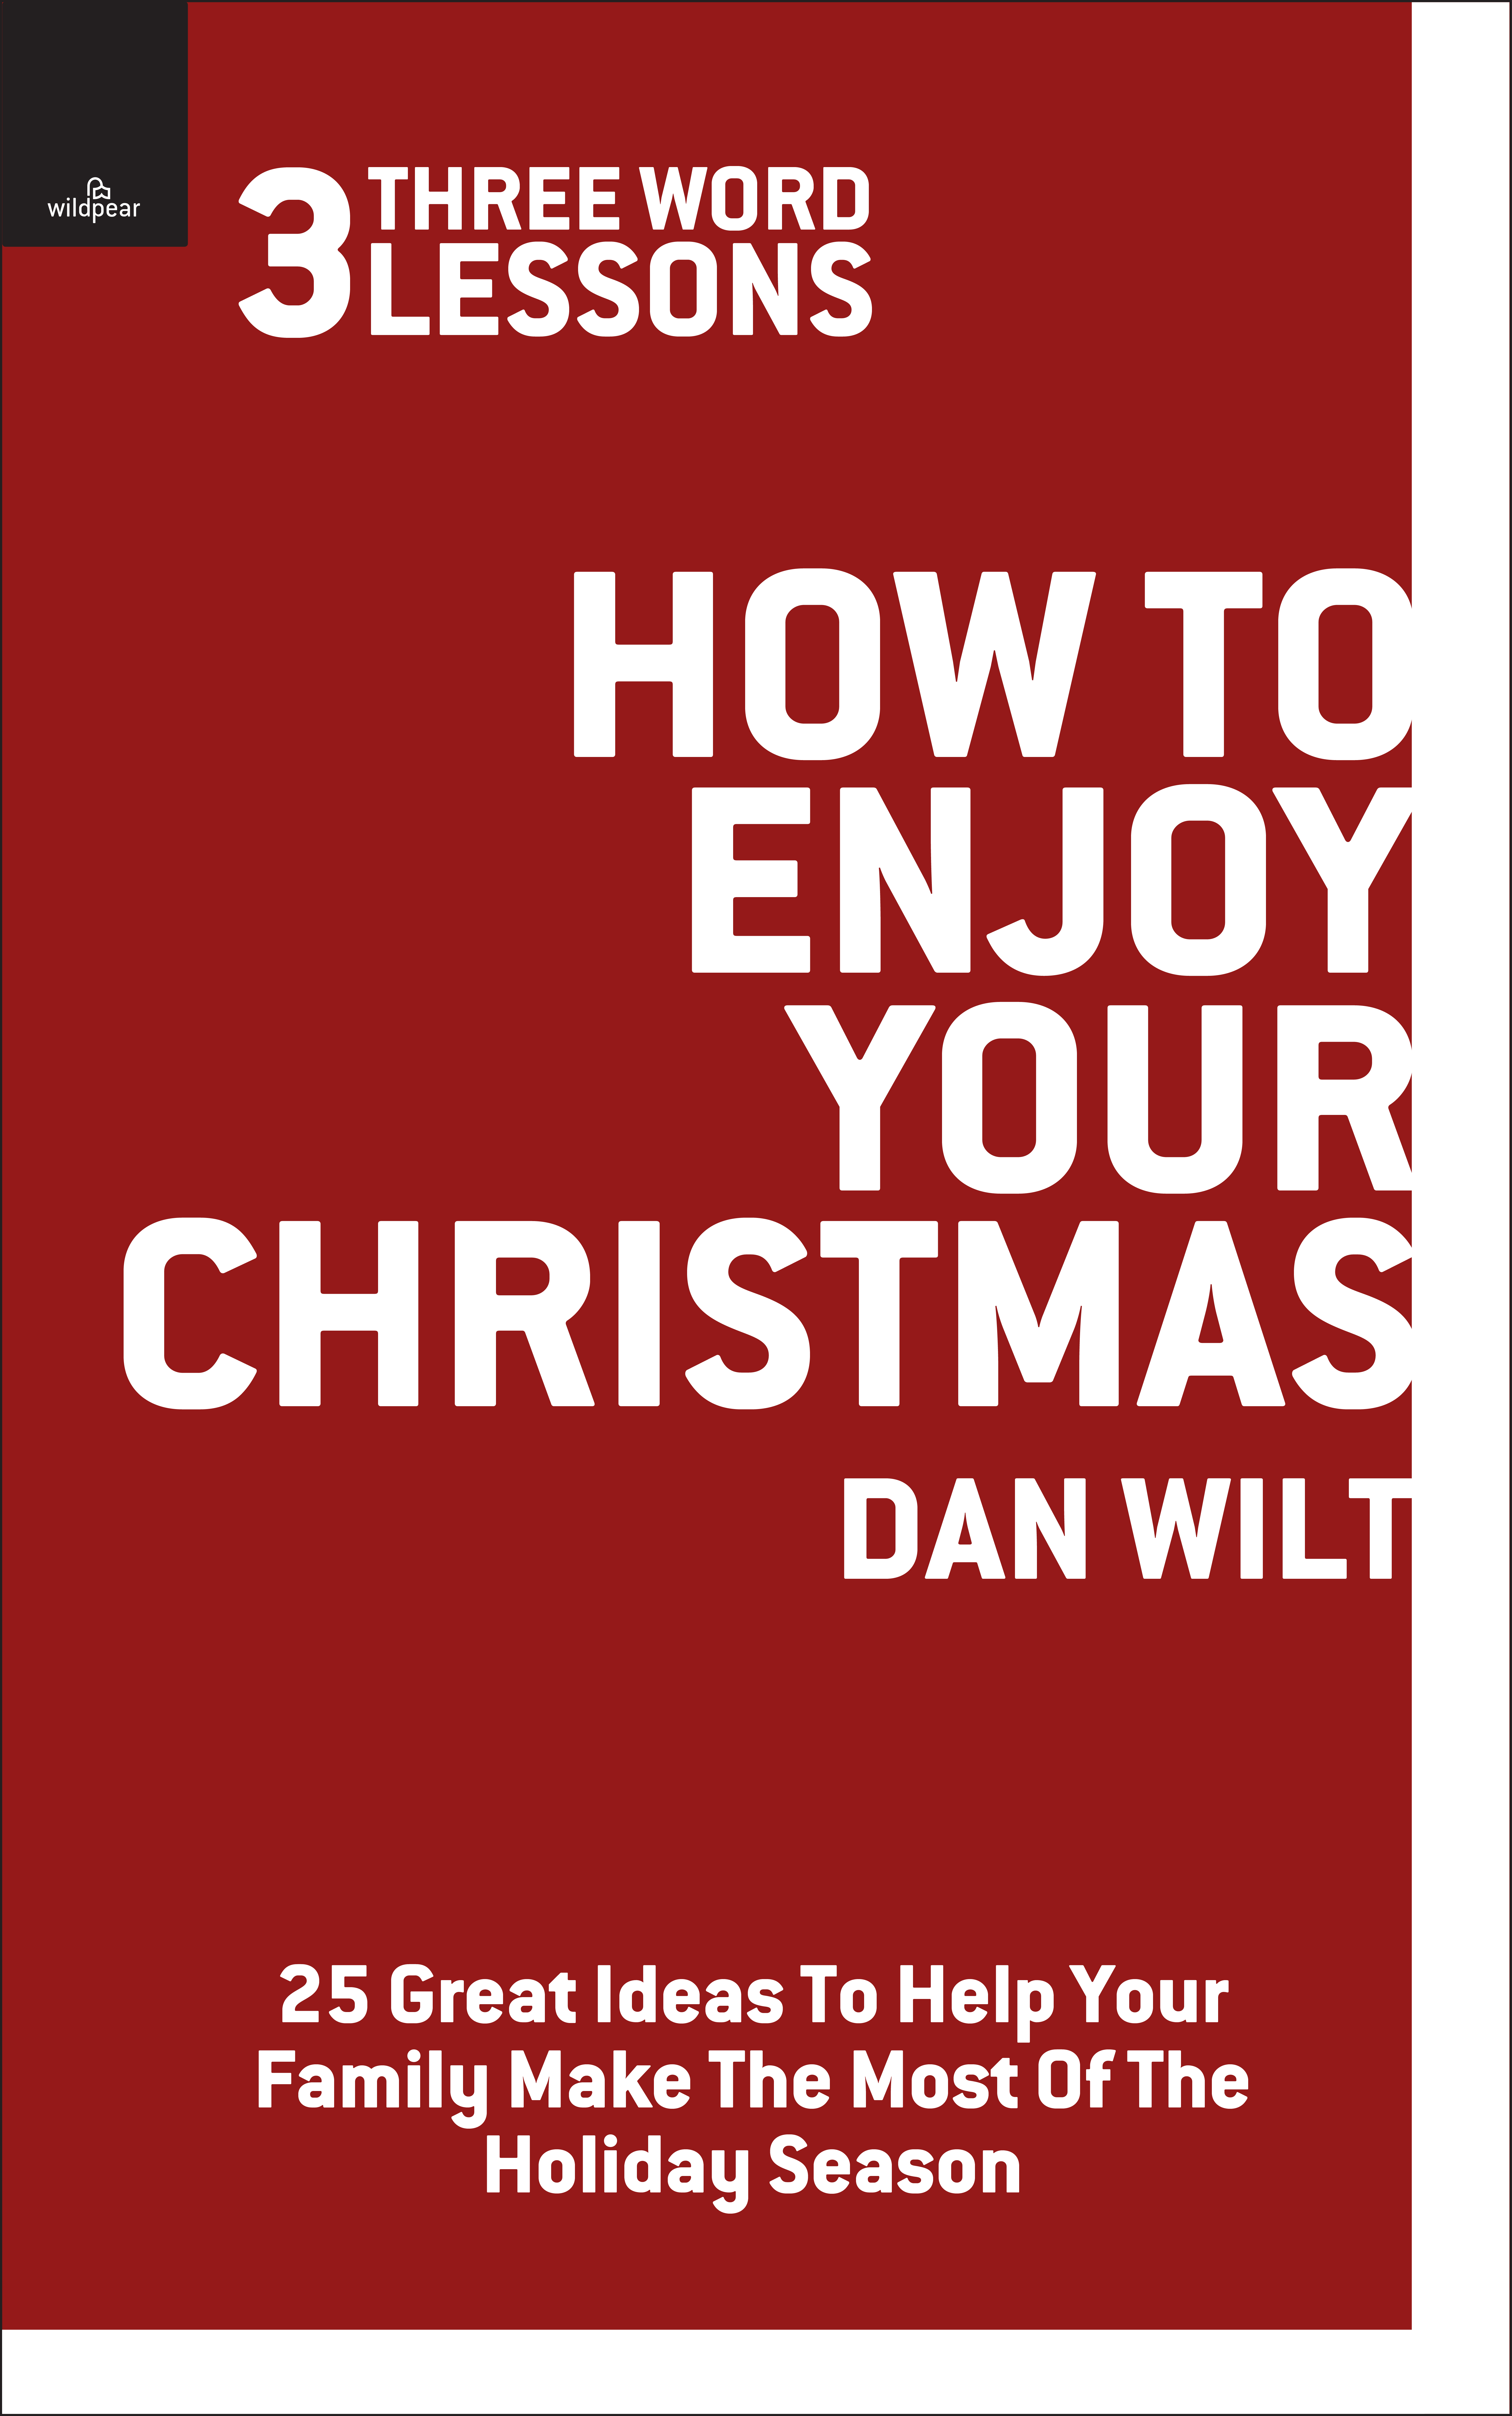 How To Enjoy Your Christmas (3 Word Lessons): 25 Great Ideas To Help Your Family Make The Most Of The Holiday Season By: Dan Wilt